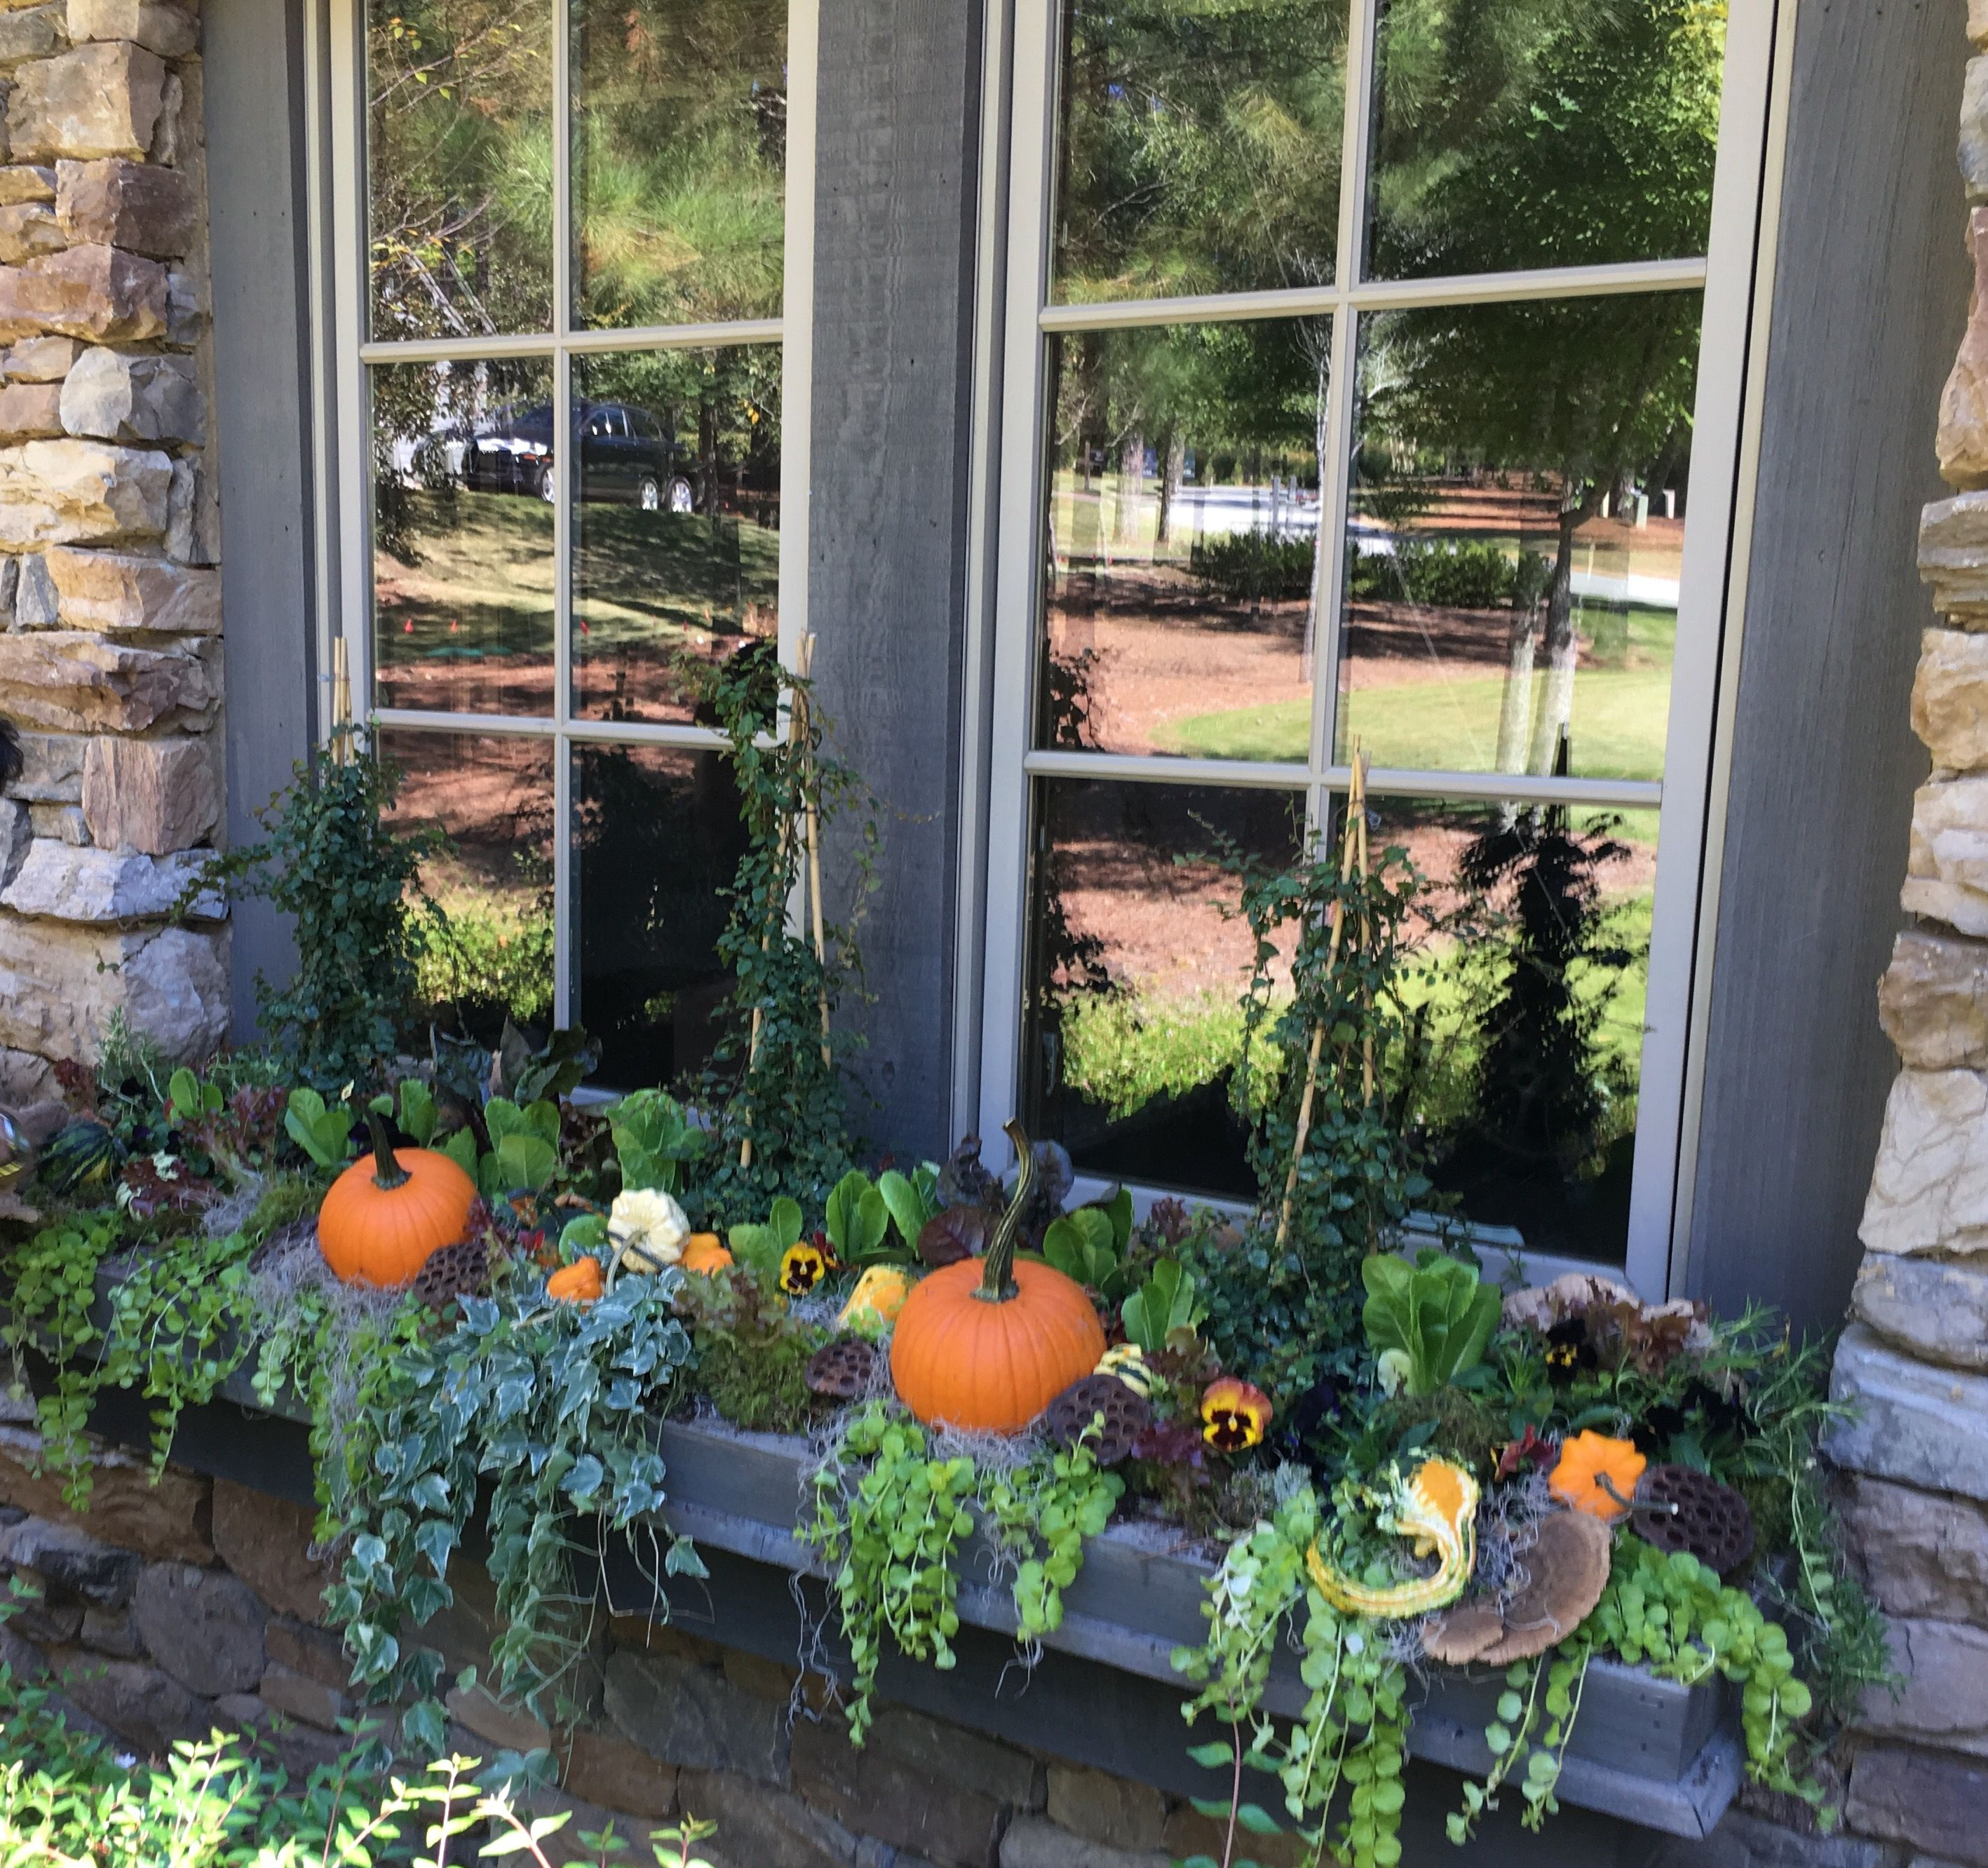 Pumpkin window boxes are always a good idea. _____________________⠀⠀⠀⠀⠀⠀⠀⠀⠀⠀⠀⠀⠀⠀⠀⠀⠀⠀ ⠀⠀⠀⠀⠀⠀⠀⠀⠀⠀⠀⠀⠀⠀⠀⠀⠀⠀ #zebgrantdesign #florals #homedecor #gifts #shoplocal #shopsmall #madisonGA #interiors #events #fall #home #uniqueflowers #instaflowers #petals #flowersofinstagram #fallwedding #southernweddings #bridalbouquet #uniquebouquet #atlwedding #madisonwedding #blue #bouquet #floraldesign #uniqueflowers #instaflowers #newarrivals